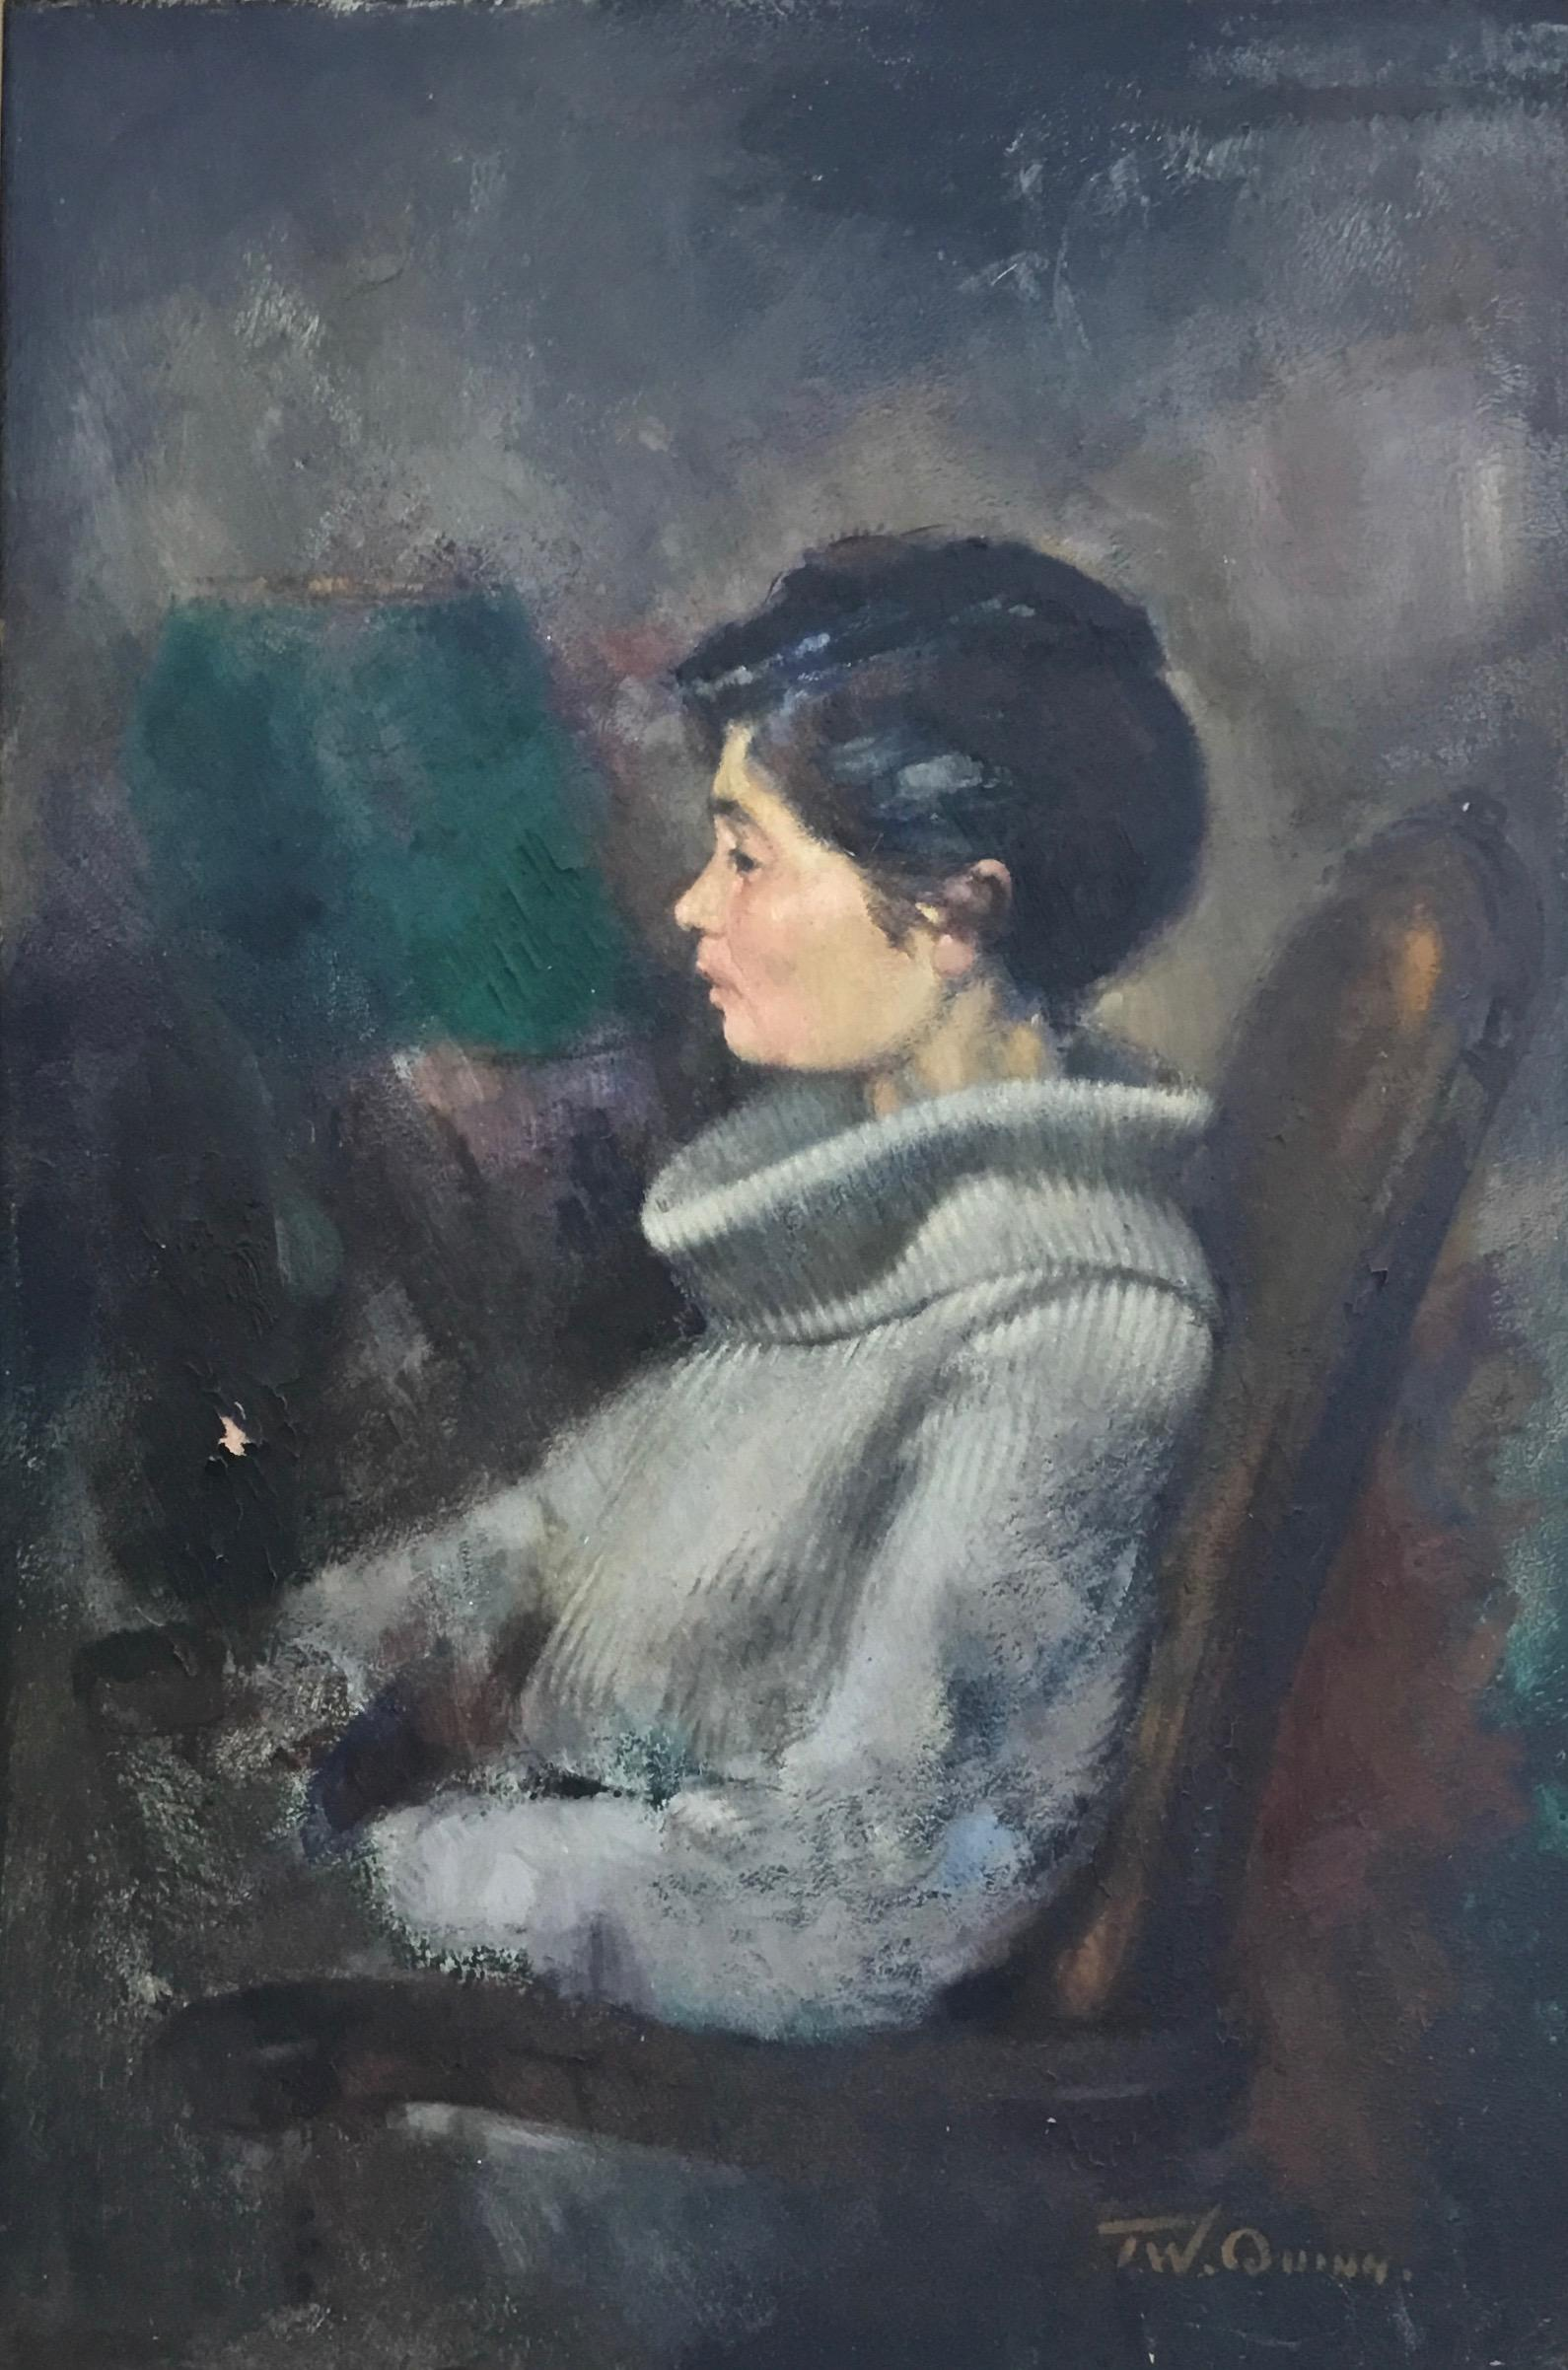 PORTRAIT OF THE ARTIST WIFE ,,Tuggs, Exhibited at THE ROYAL ACADEMY SUMMER